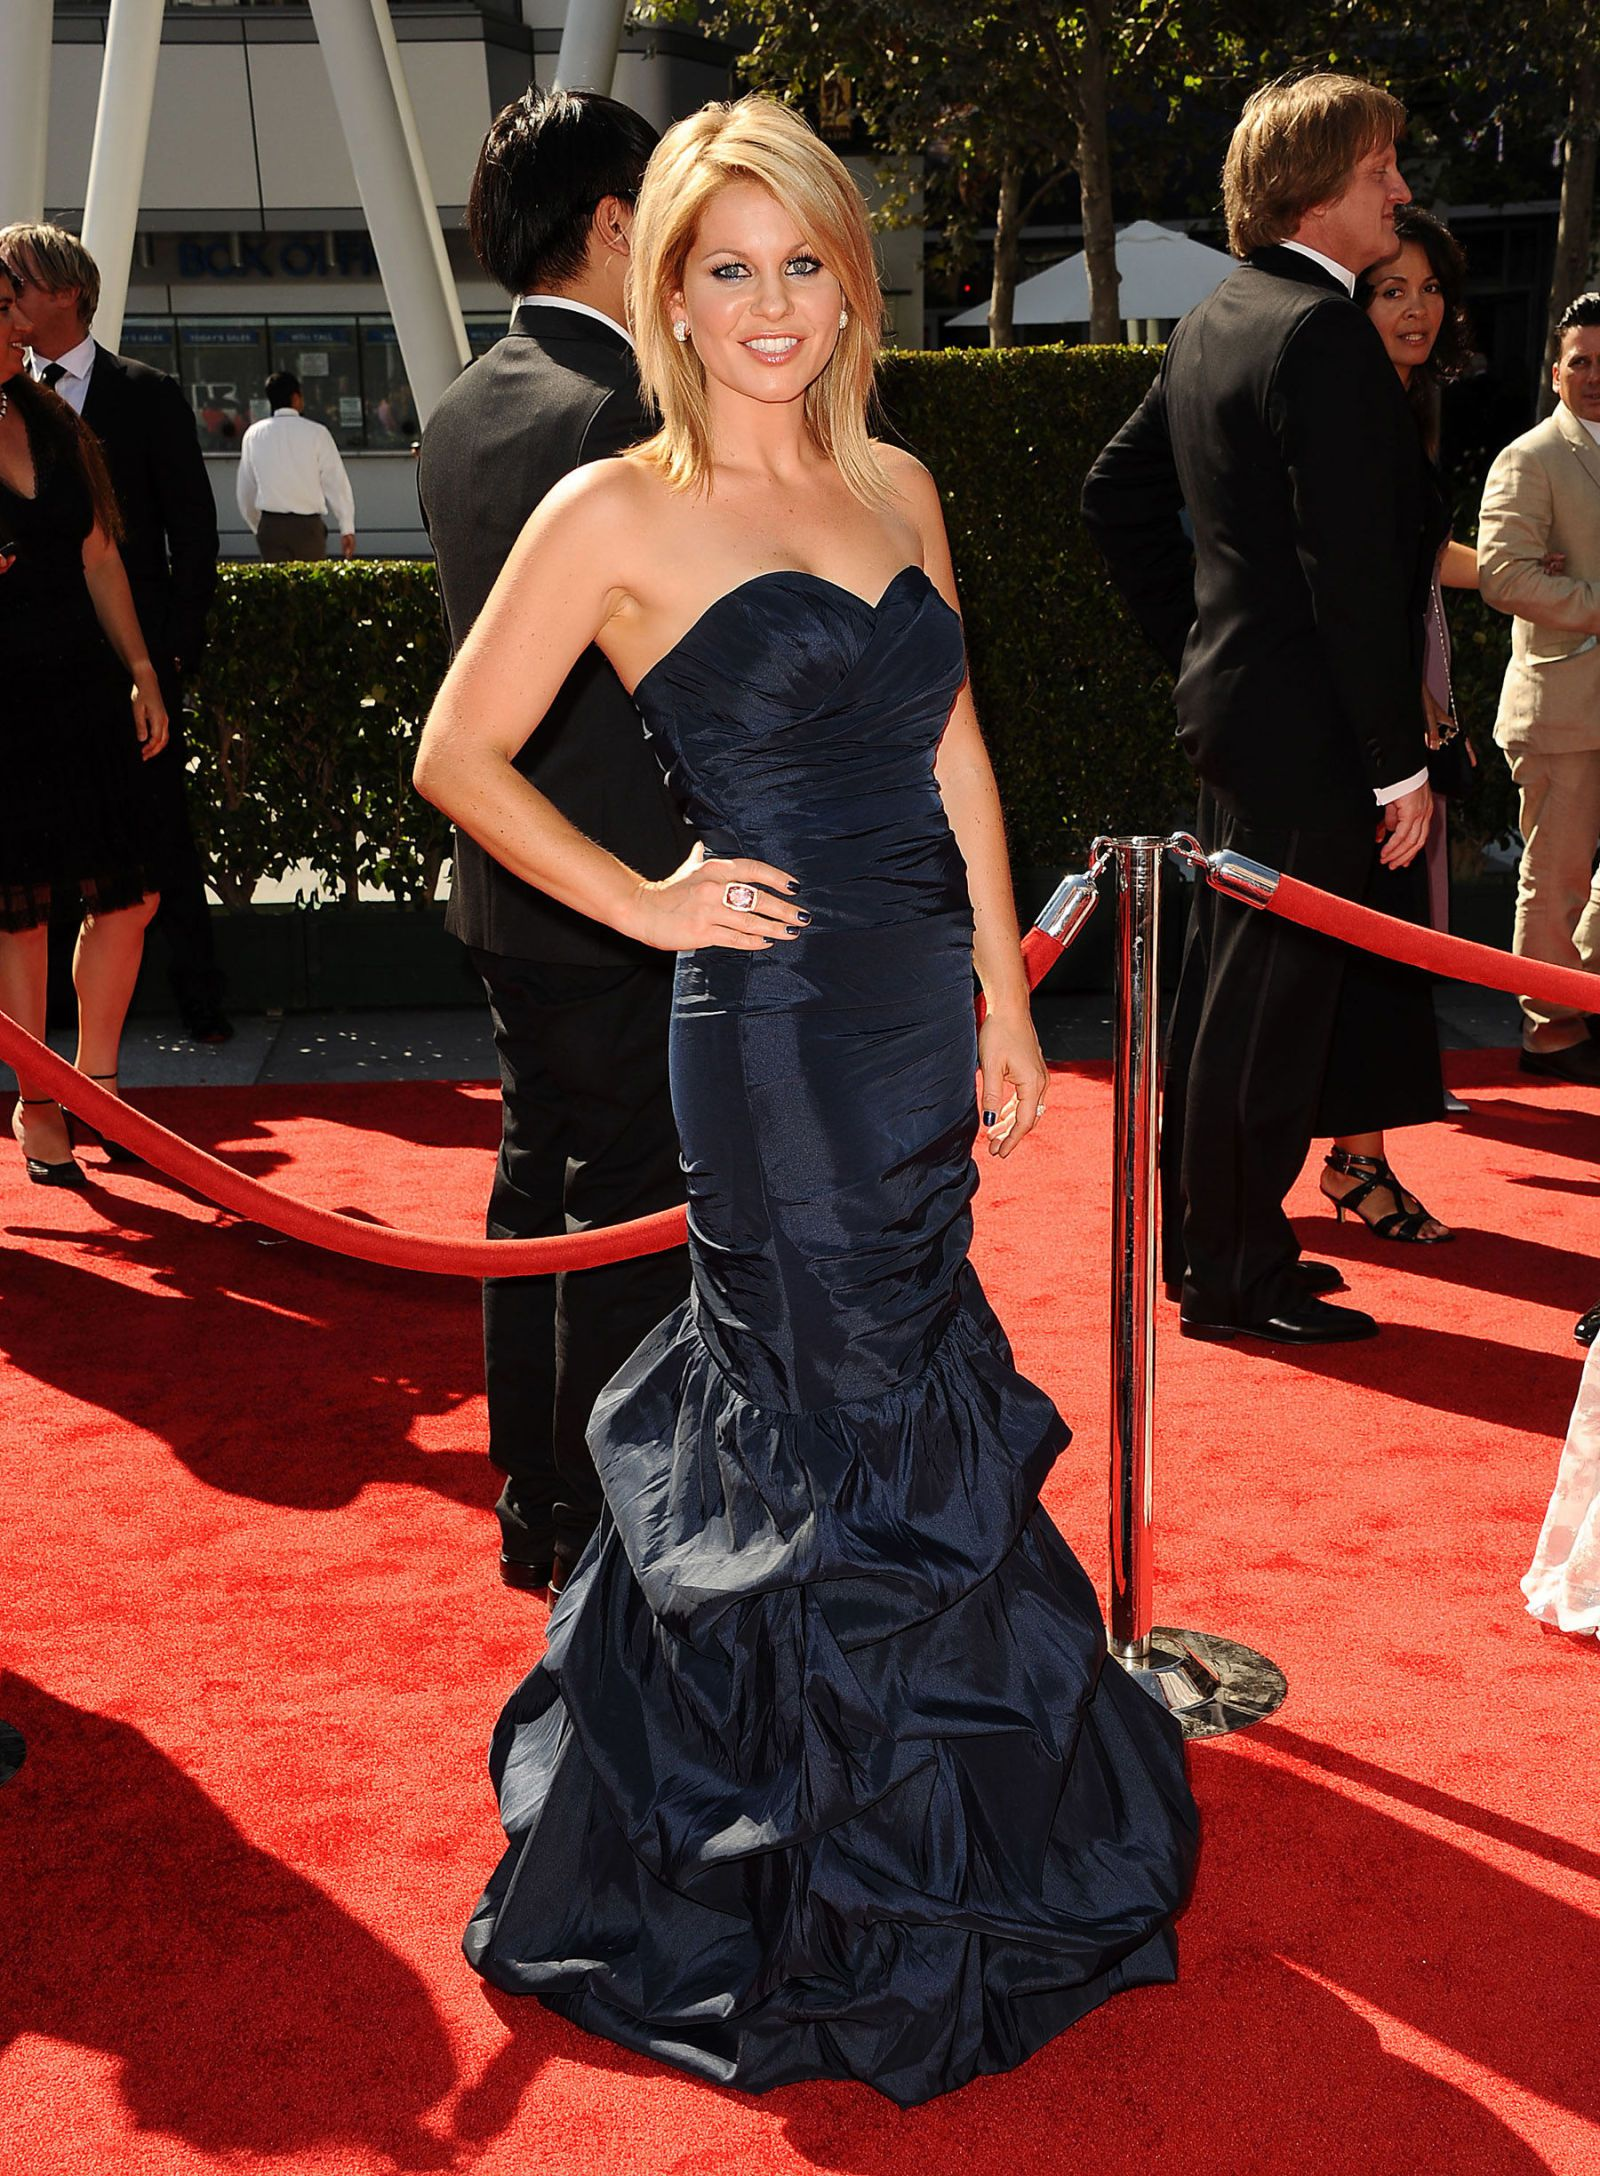 Full House Star Candace Cameron Bure Critiques Her '90s Red Carpet Looks